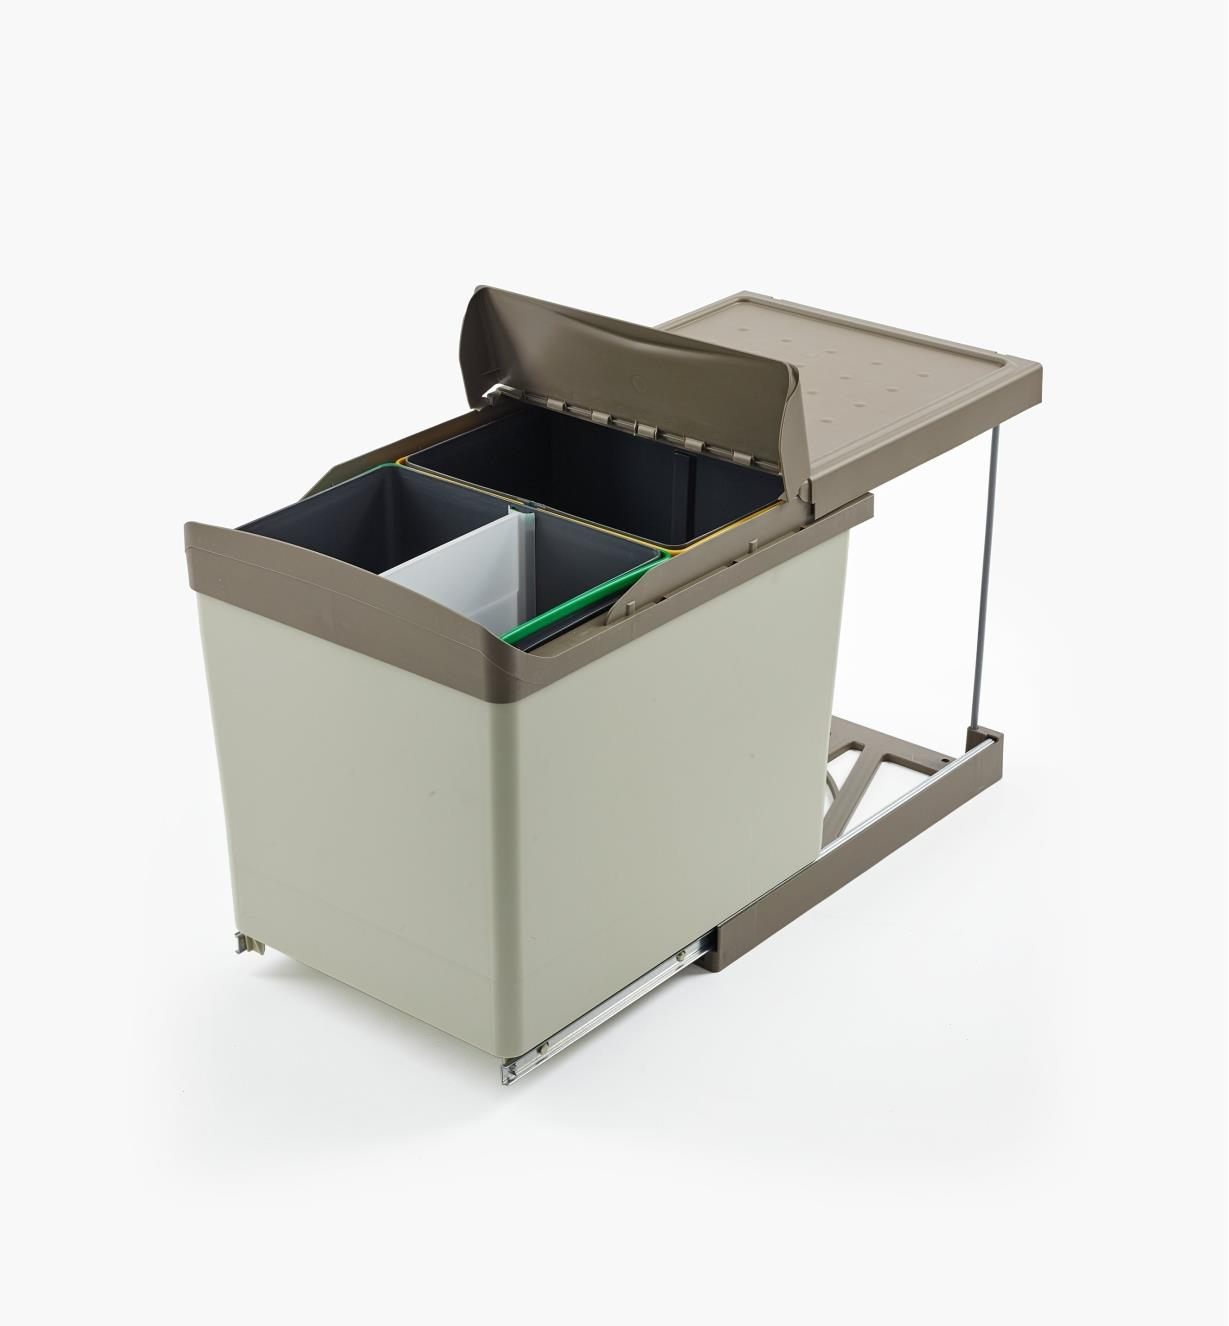 12K7825 - 42l Bottom-Mount Sliding Waste Container